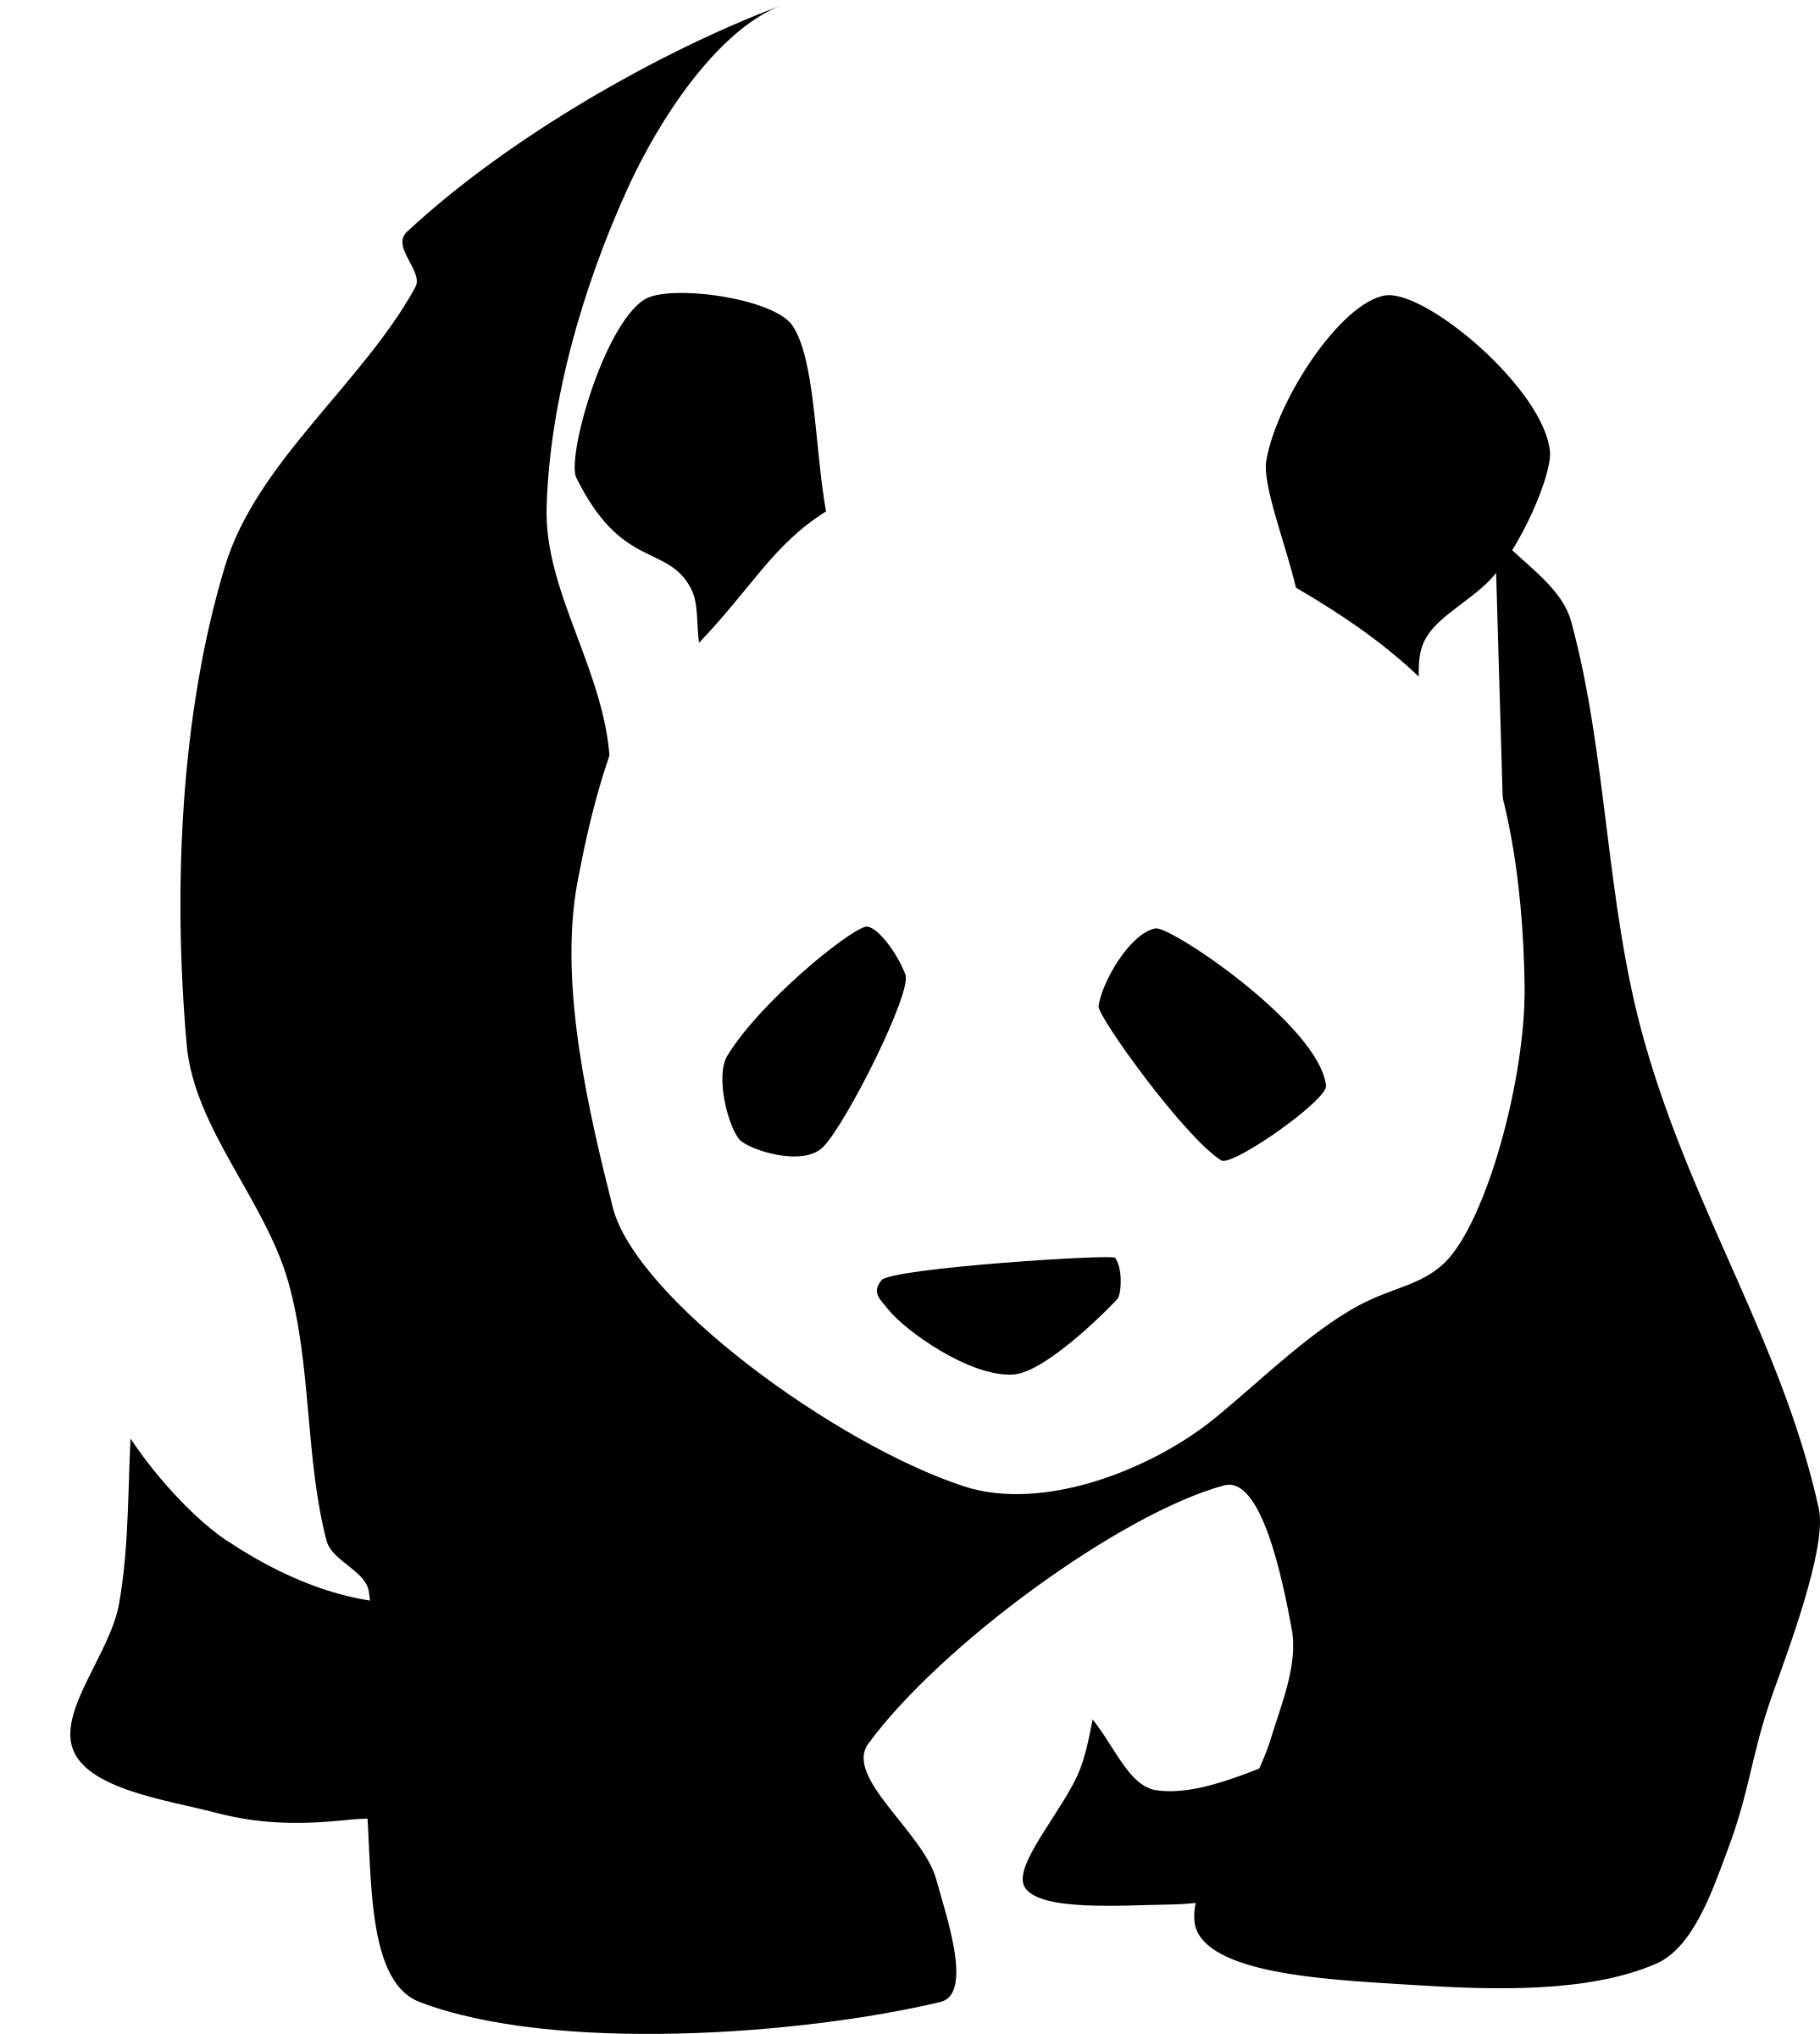 Panda logo png. Giant icons free and